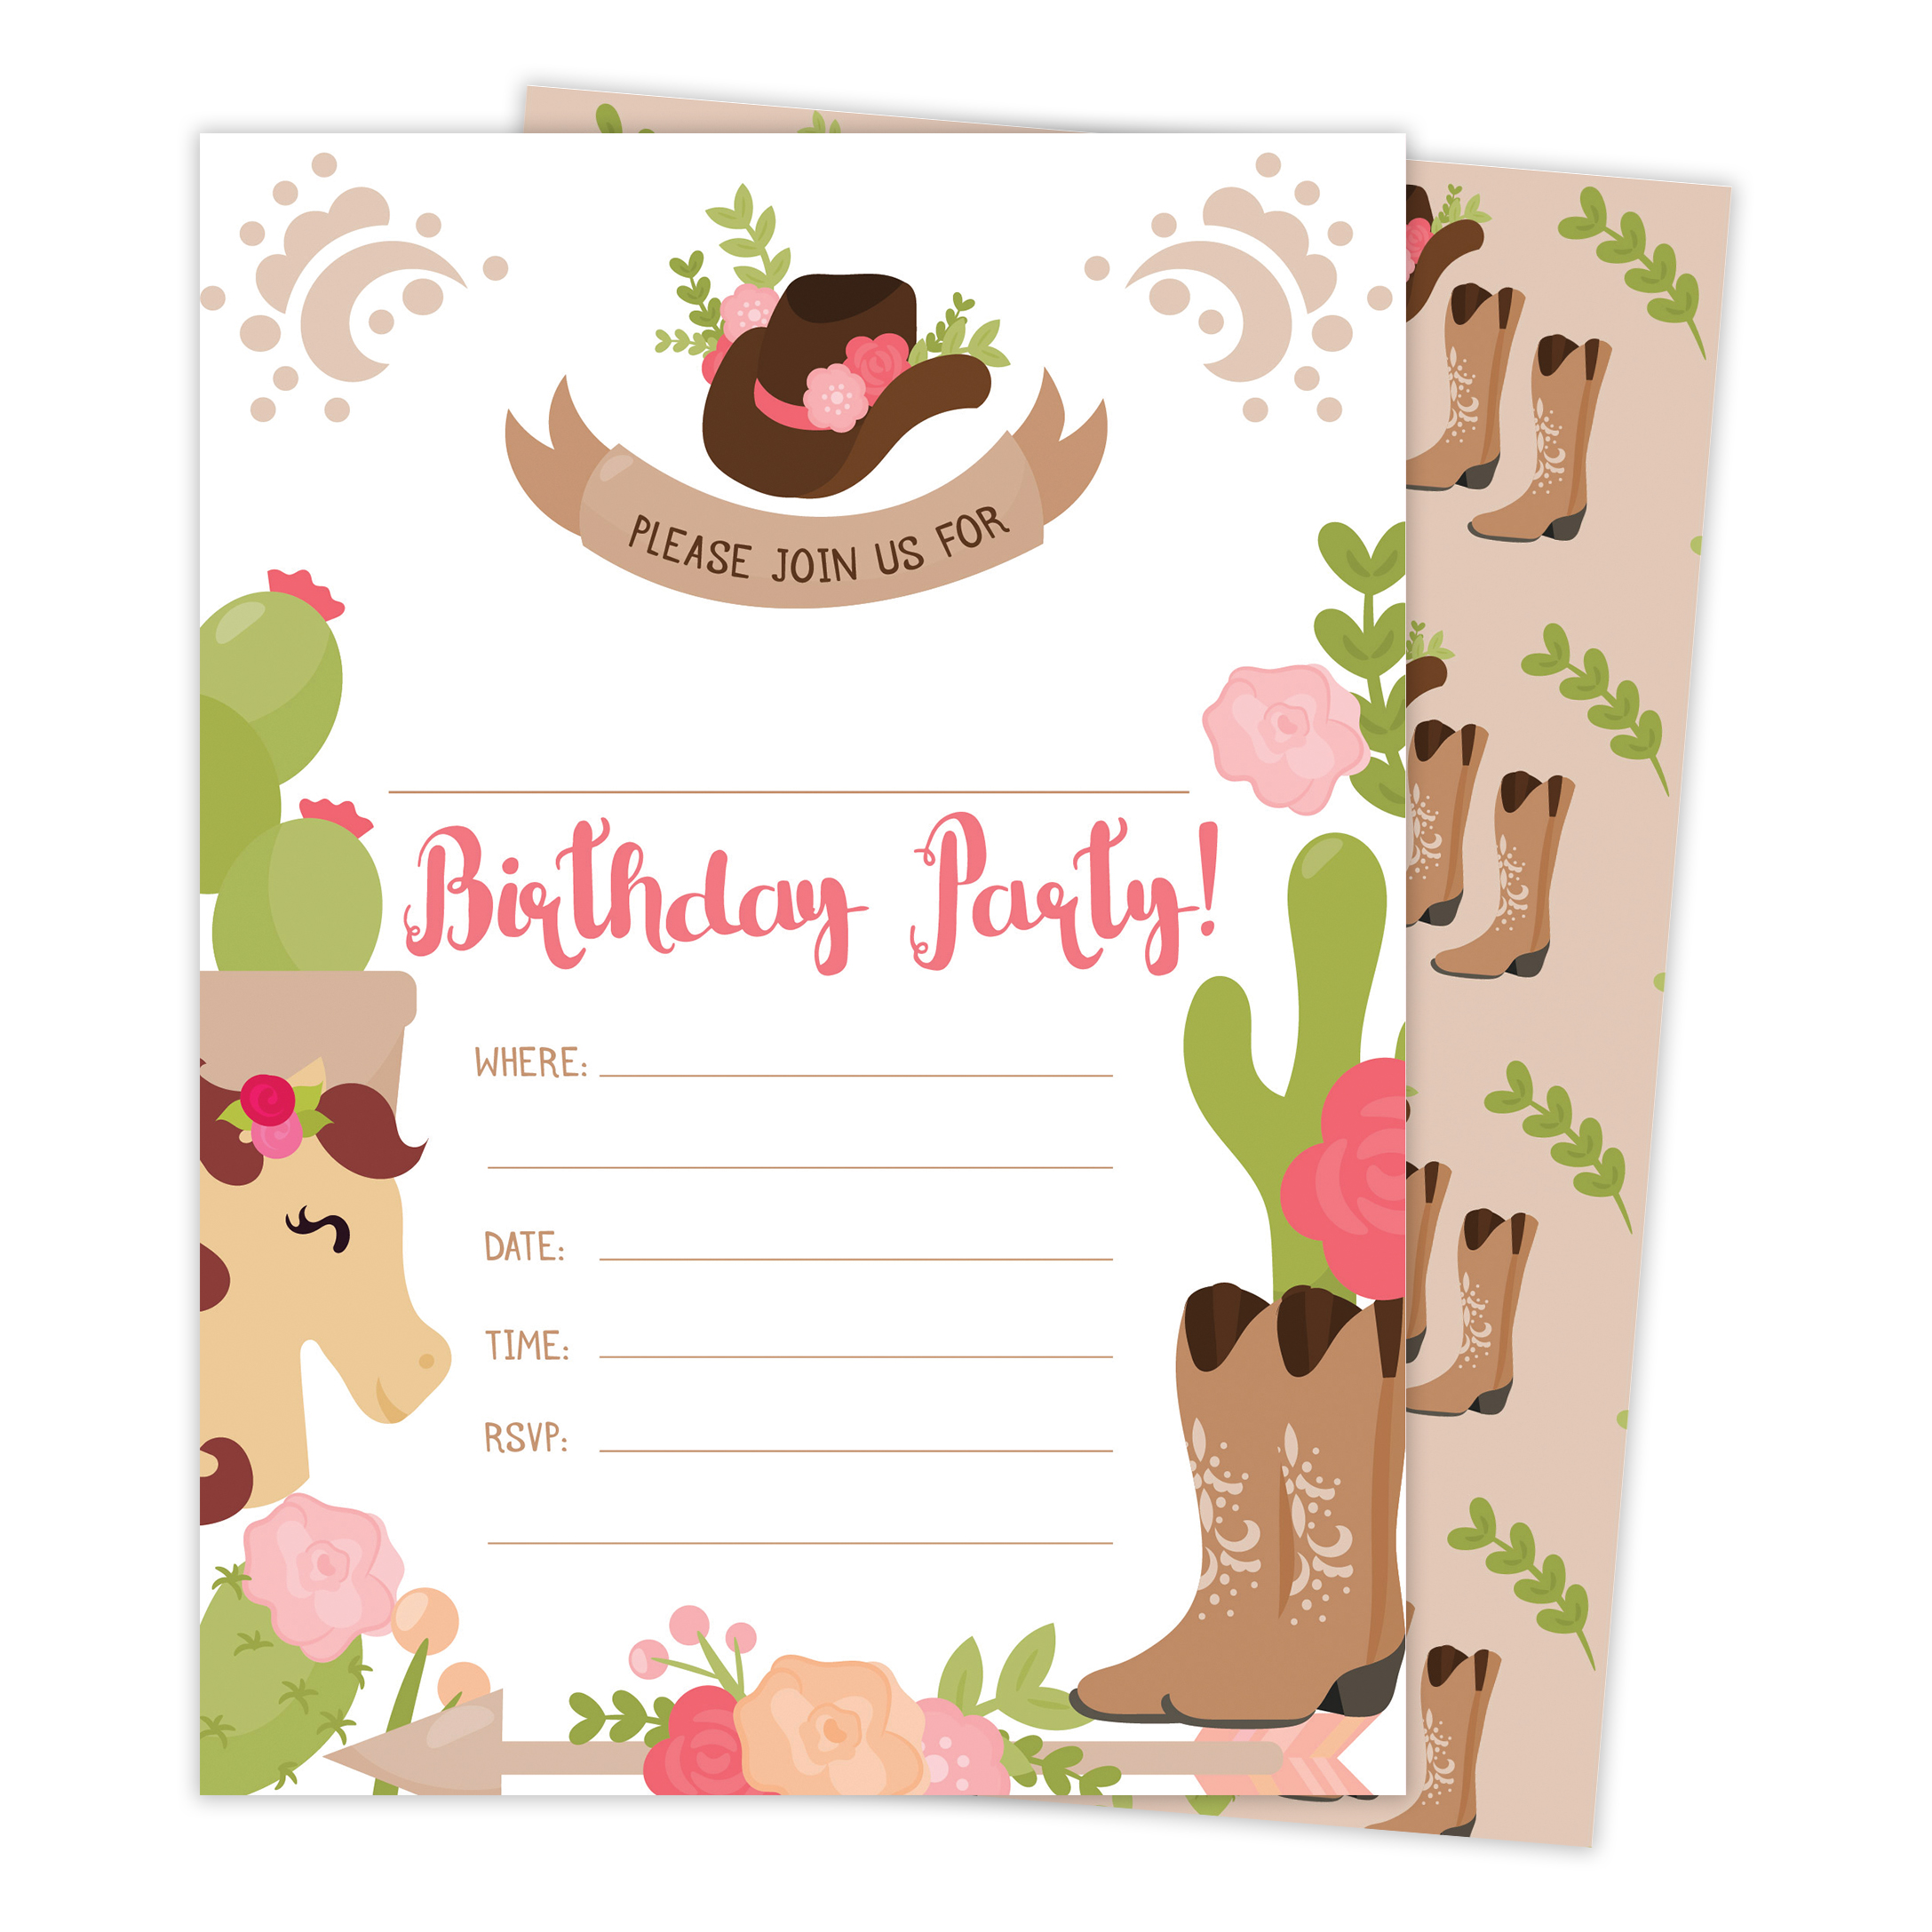 Cowgirl Cow Girl Happy Birthday Invitations Invite Cards (25 Count) with Envelopes & Seal Stickers Boys Girls Kids Party